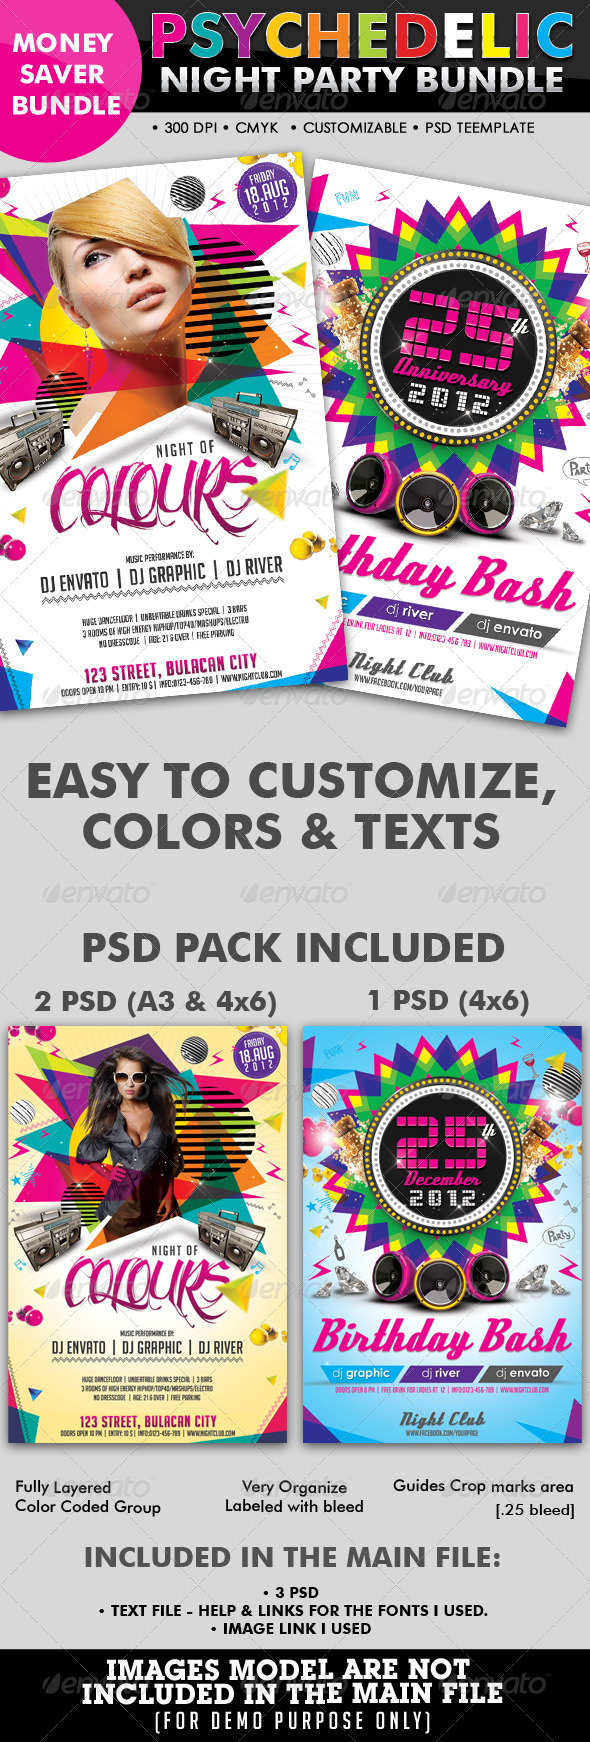 Psychedelic Club/Night Party Flyer Bundle #08 - Clubs & Parties Events